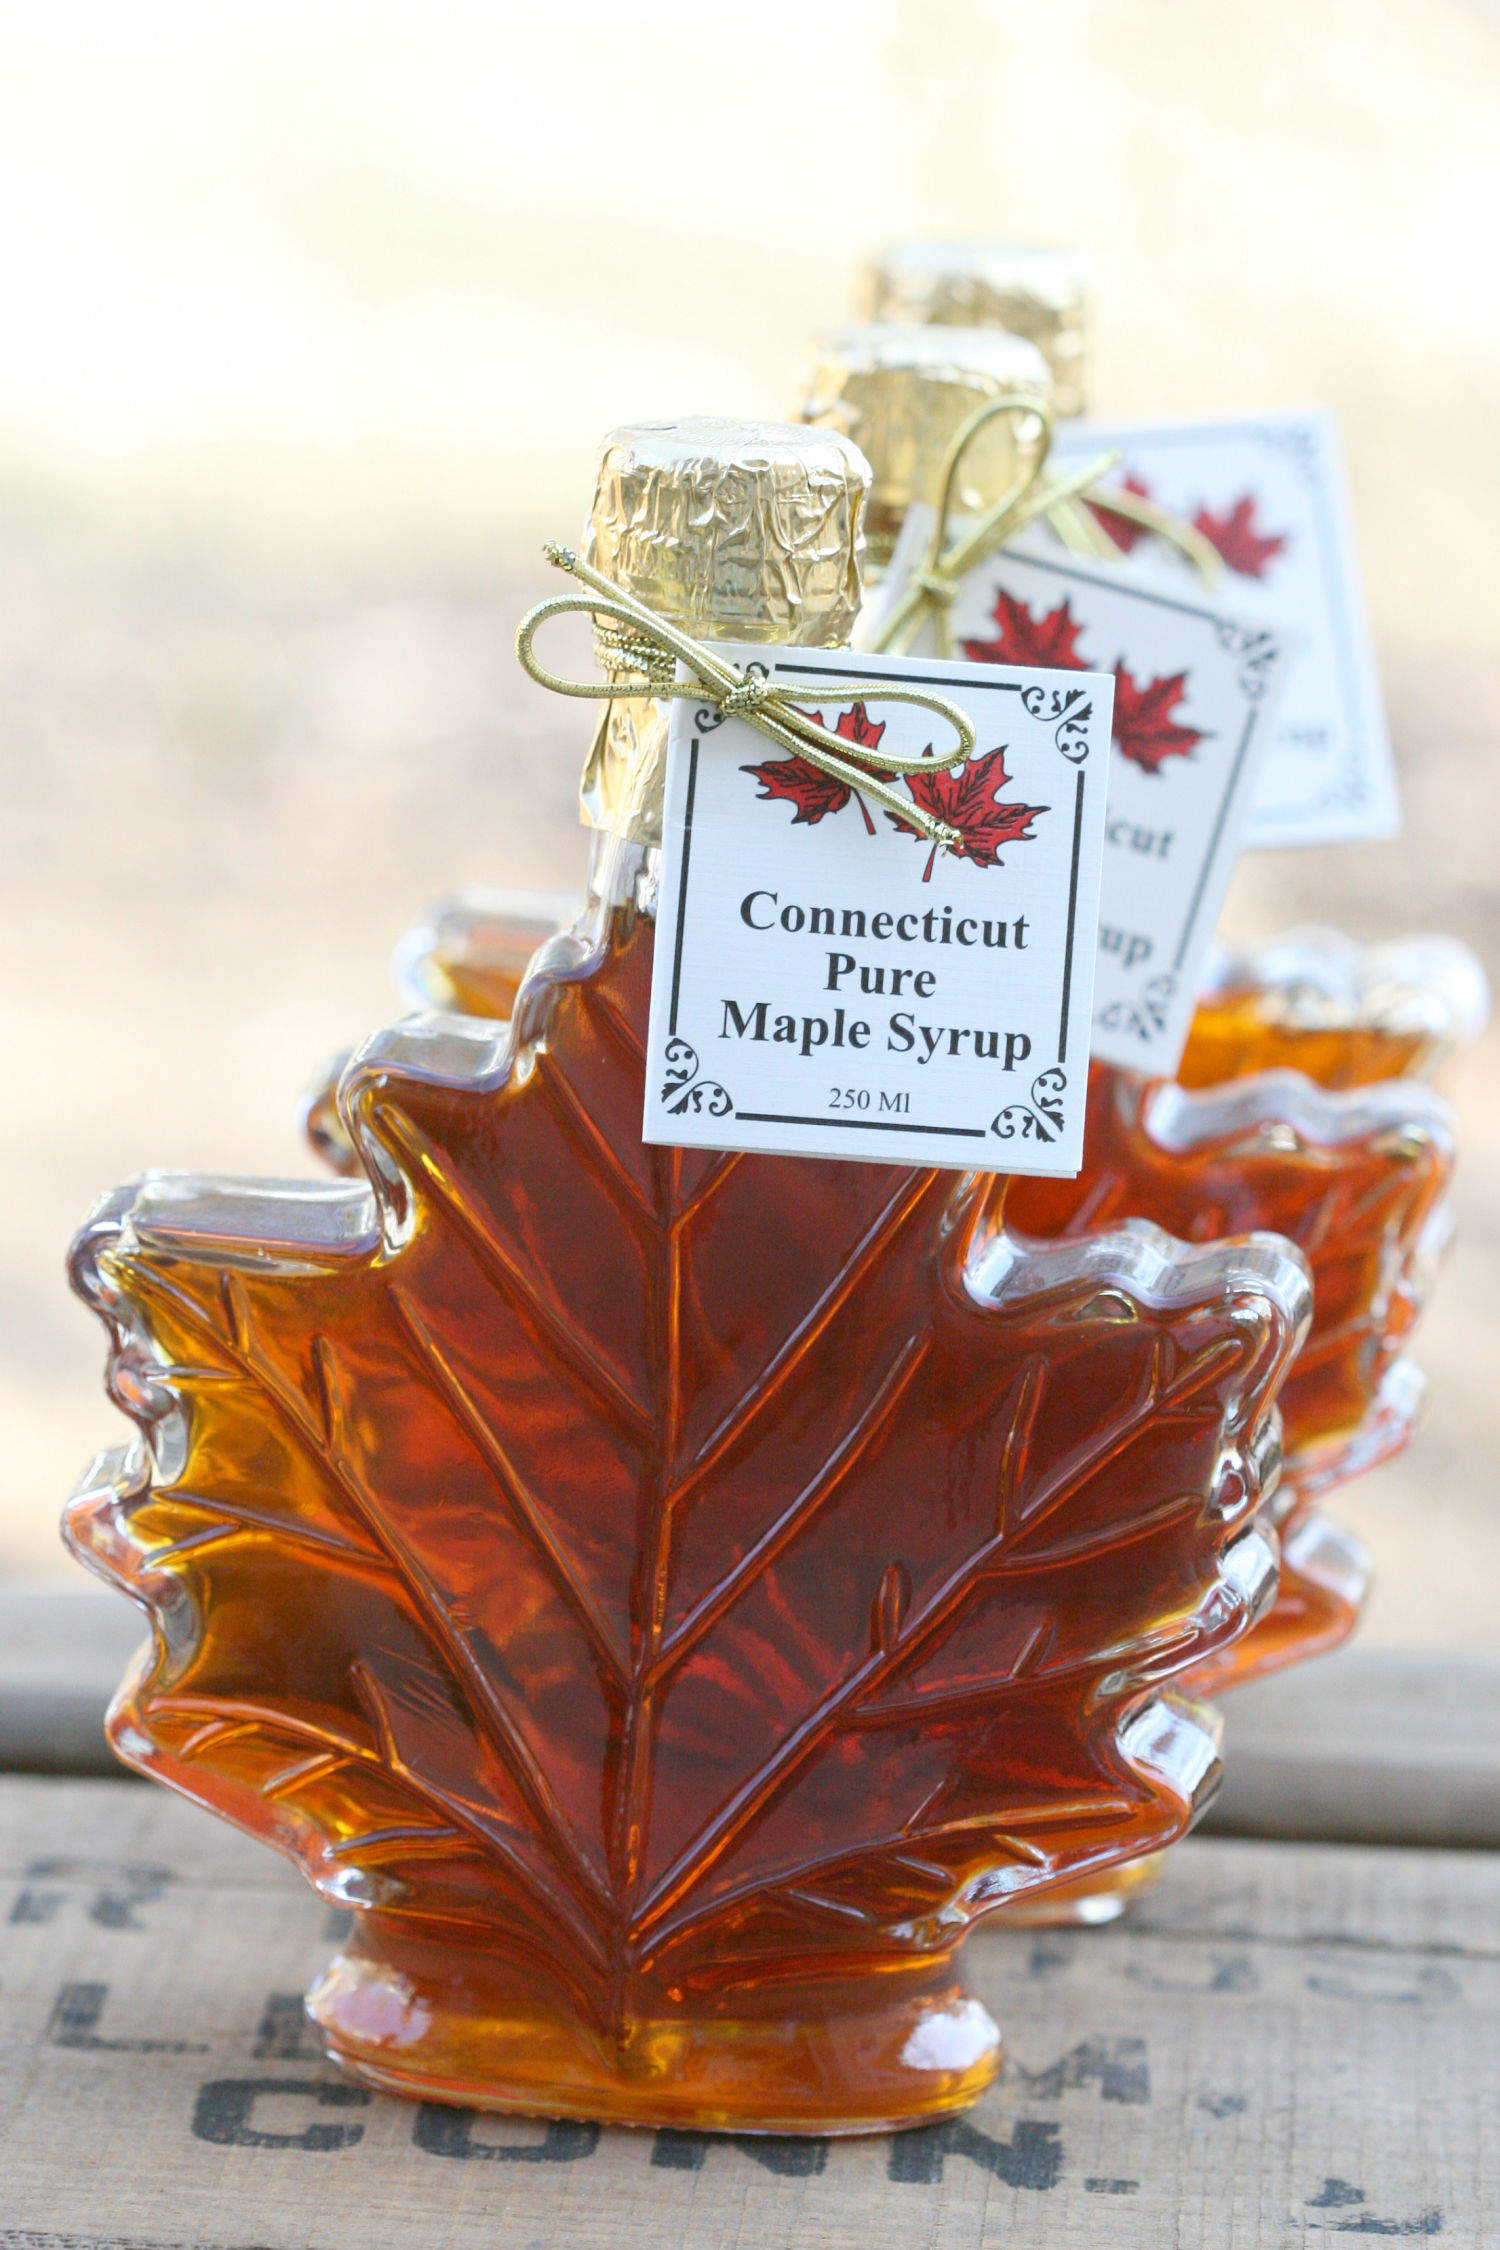 Pure maple syrup in Italian glass maple leaf containers.